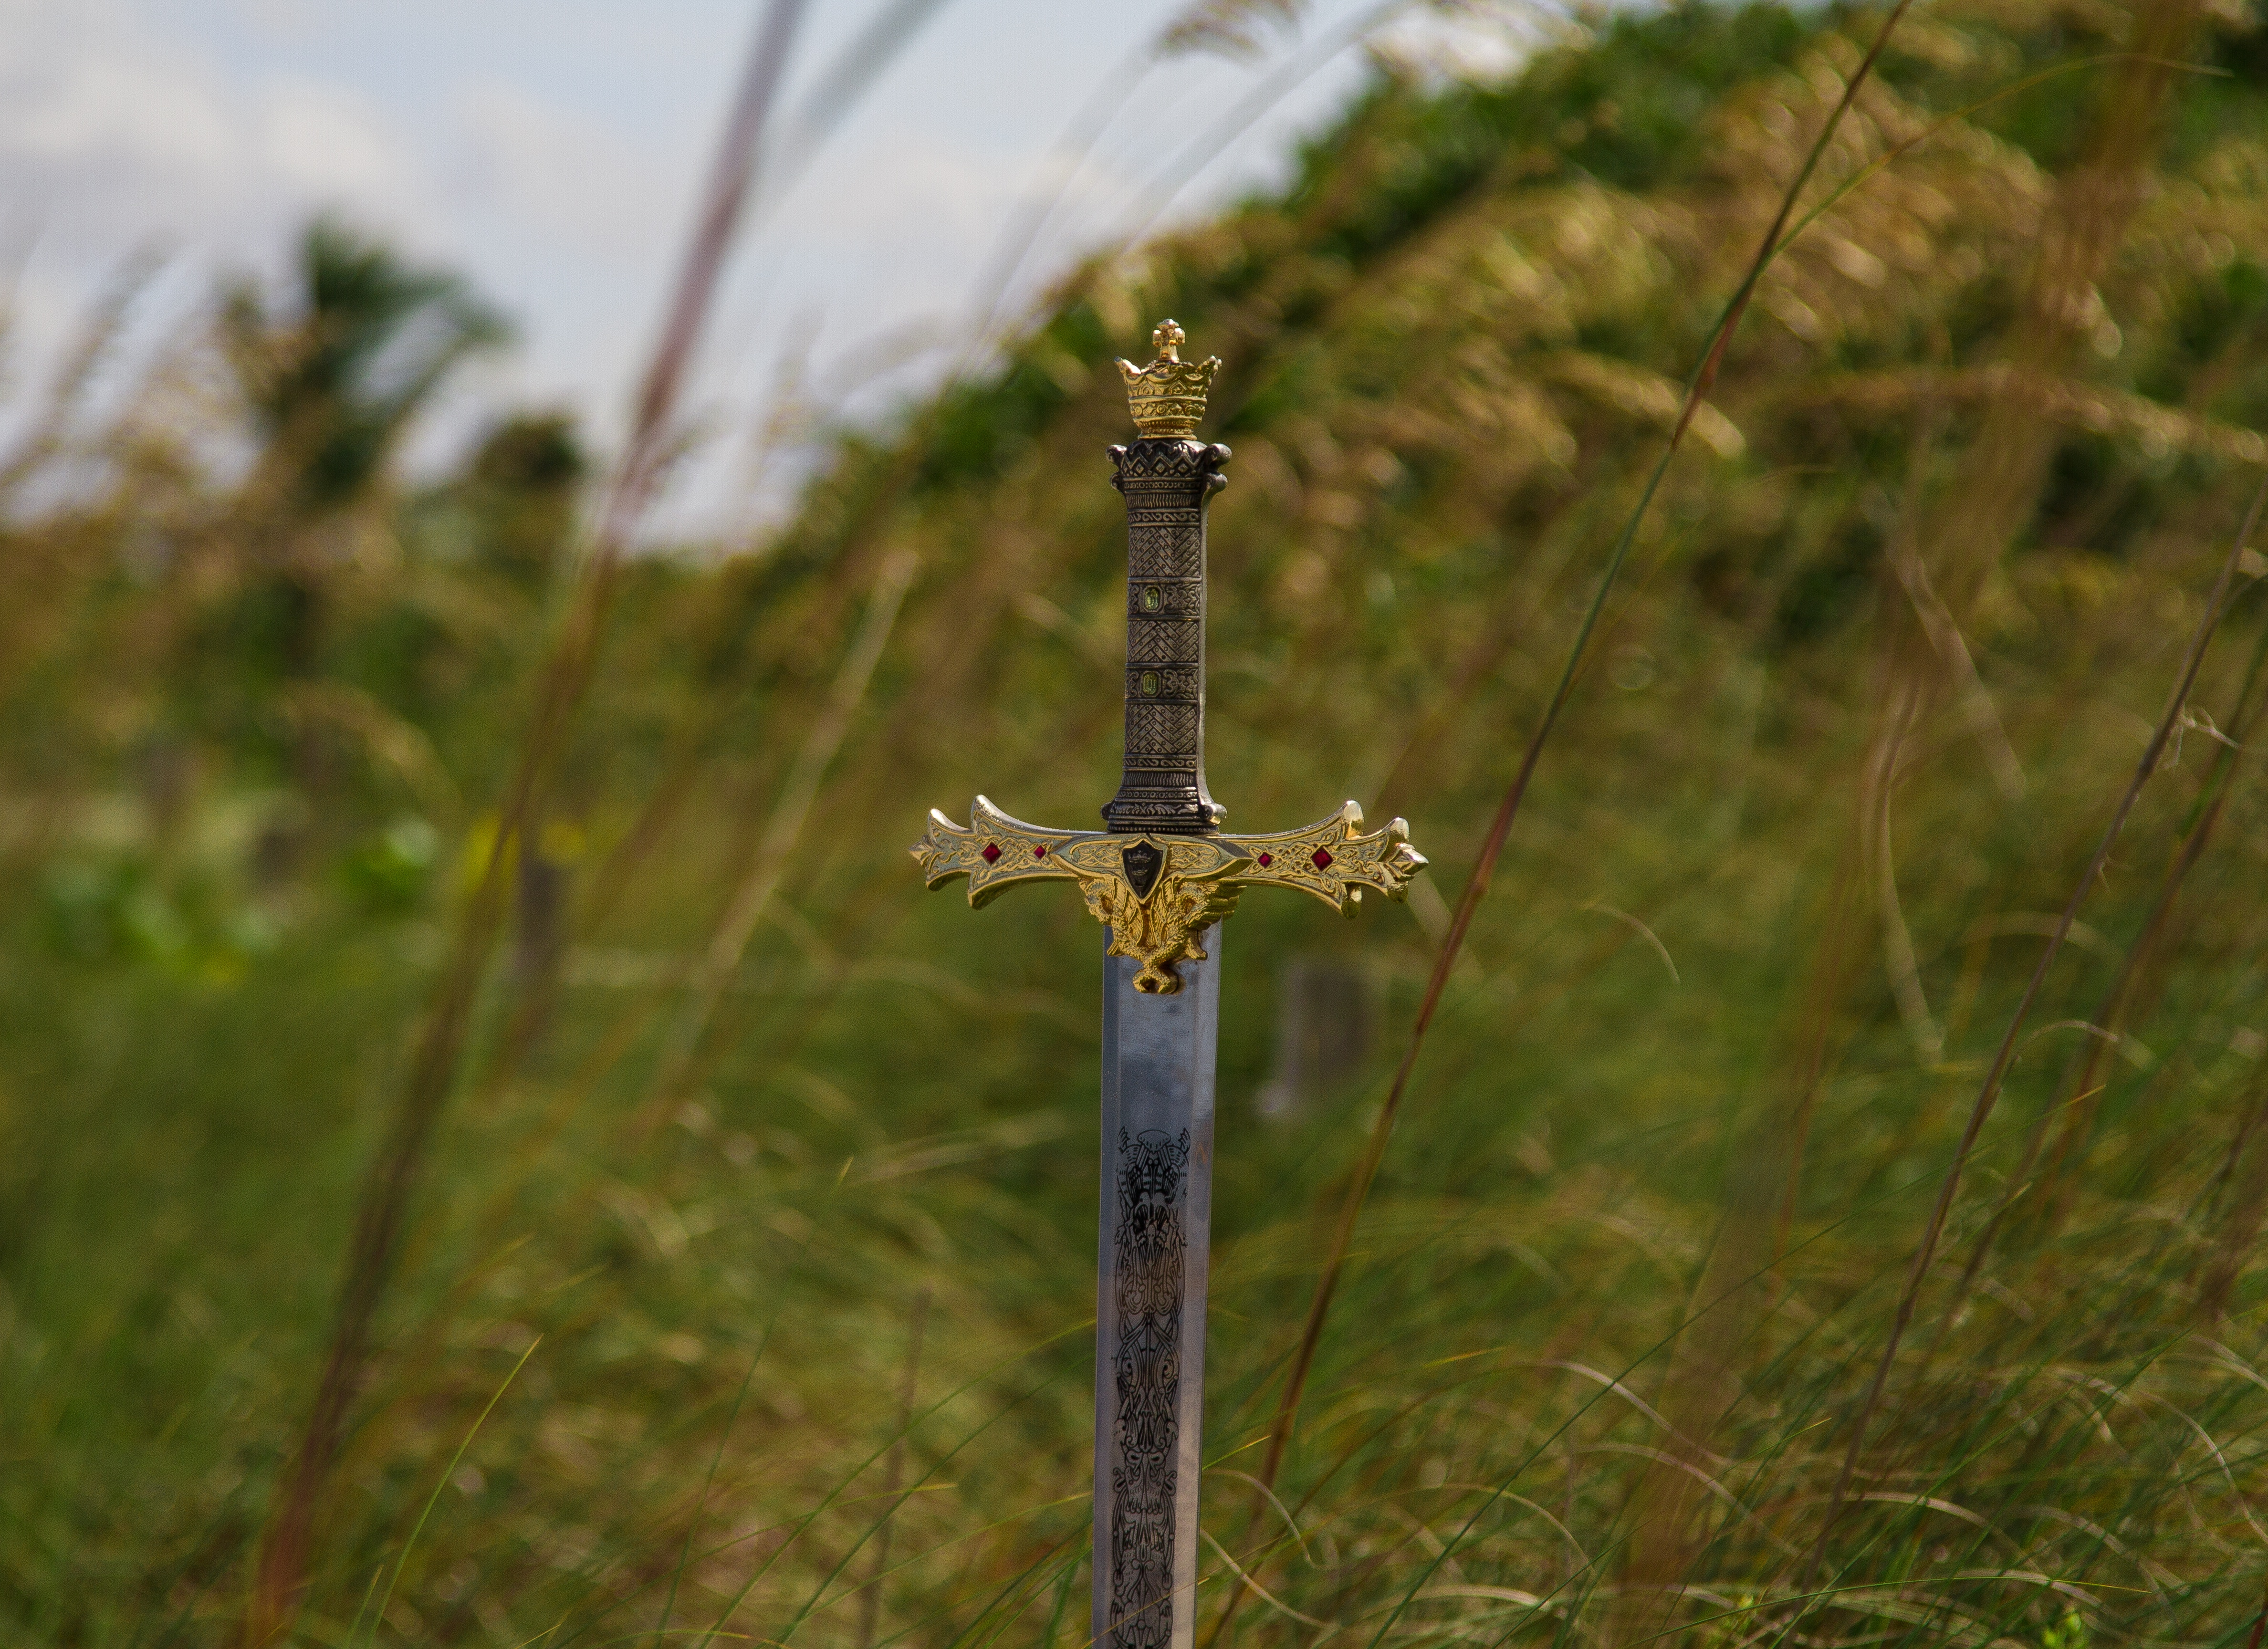 Image of a sword in the ground